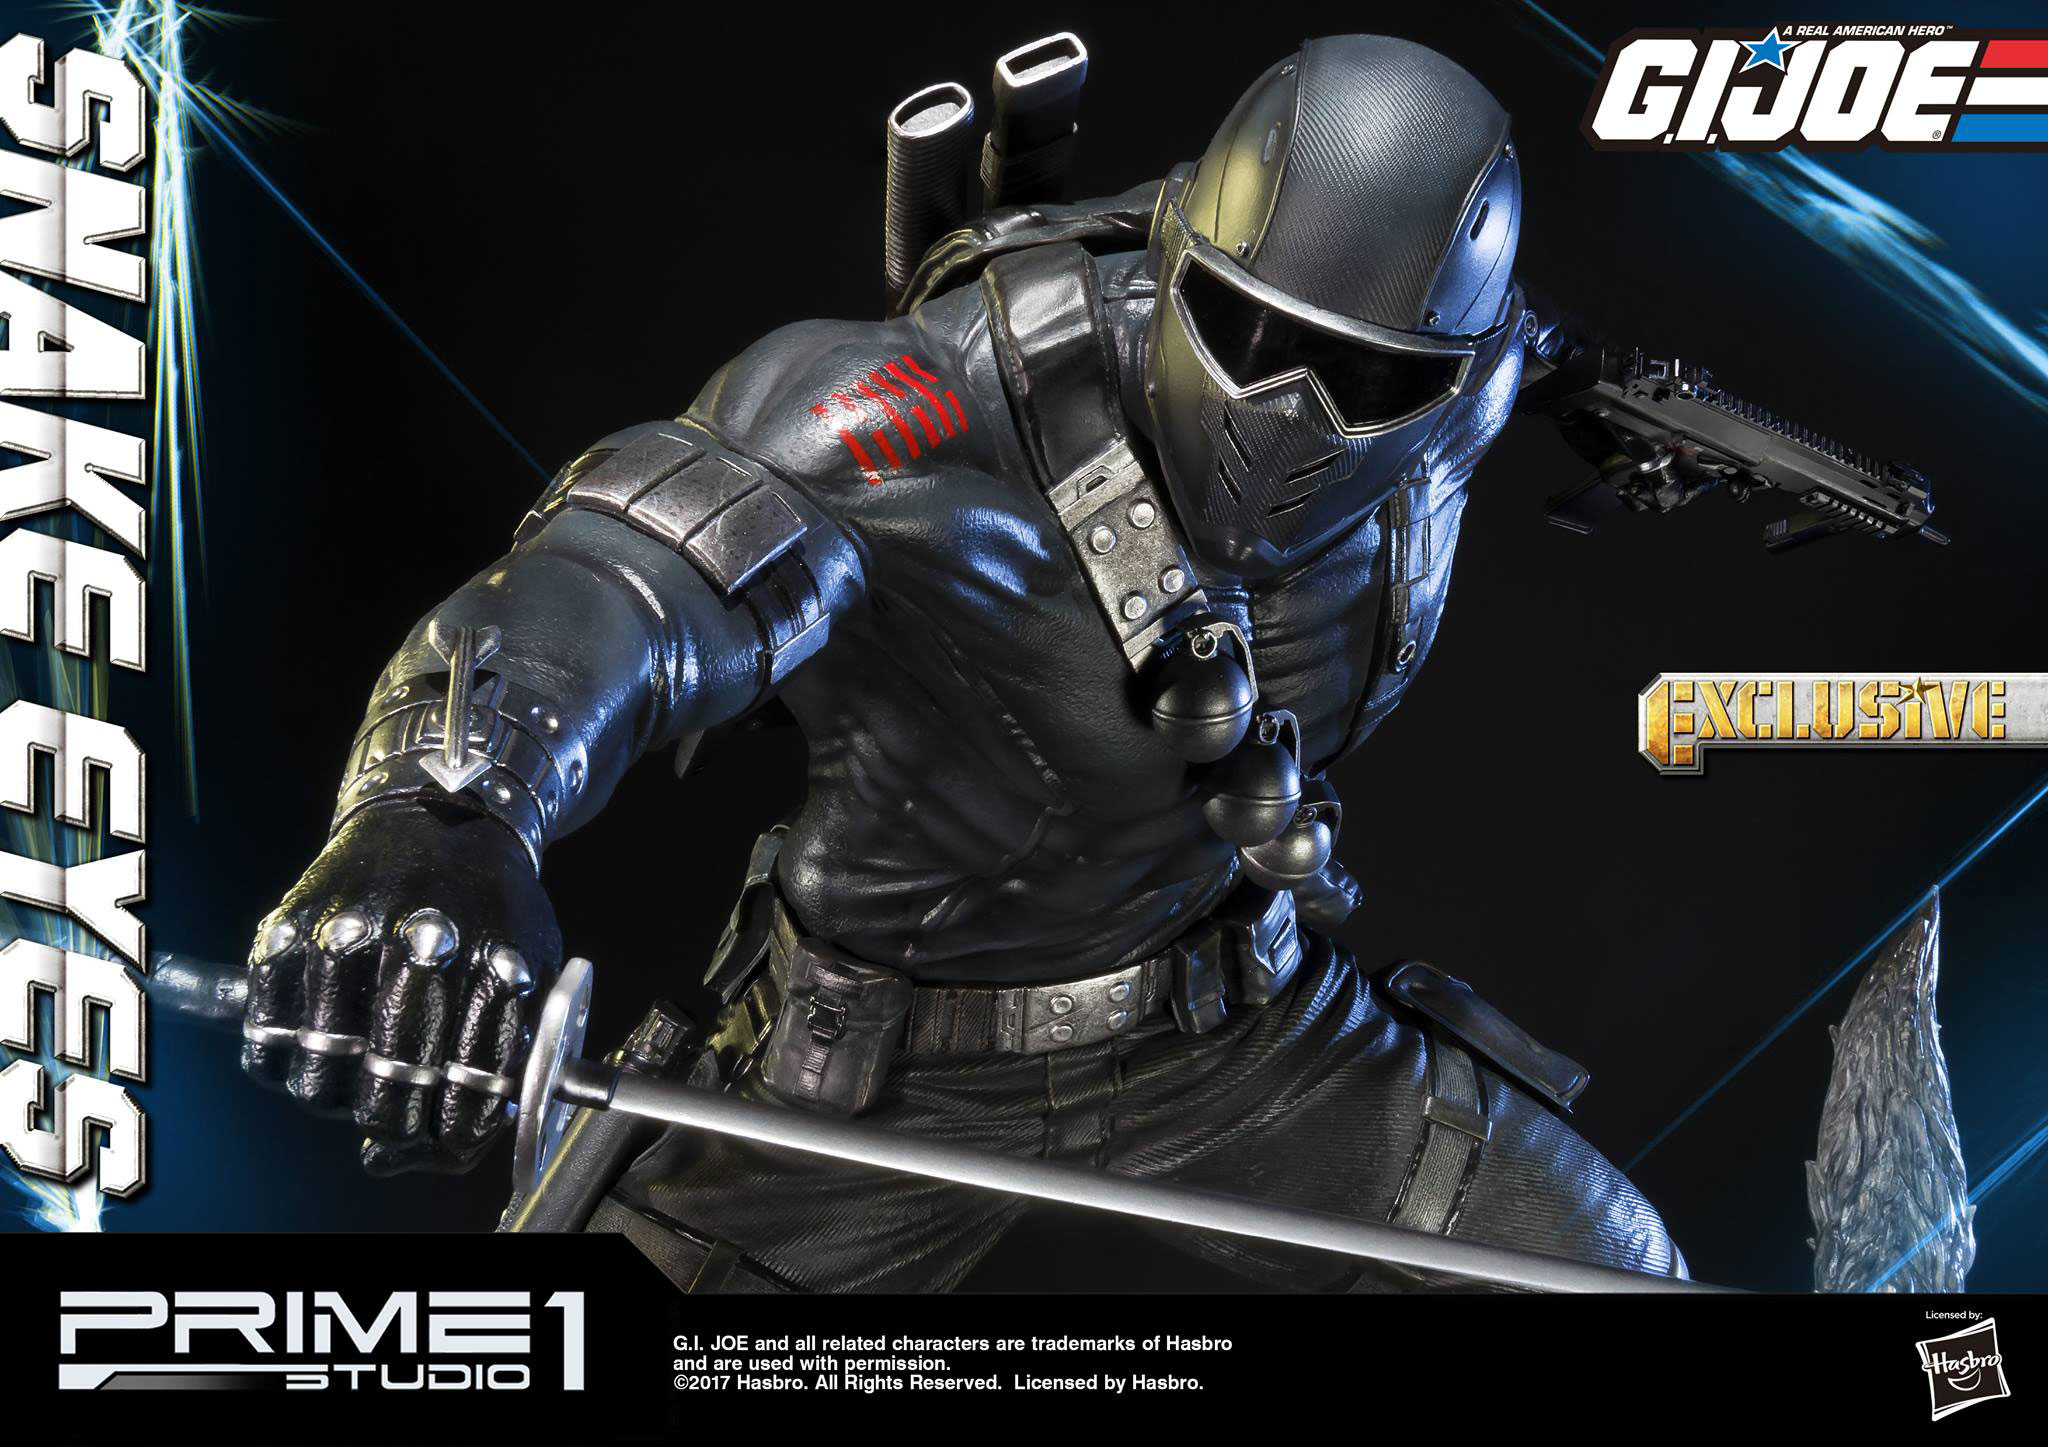 prime-1-studio-snake-eyes-gi-joe-statue-1